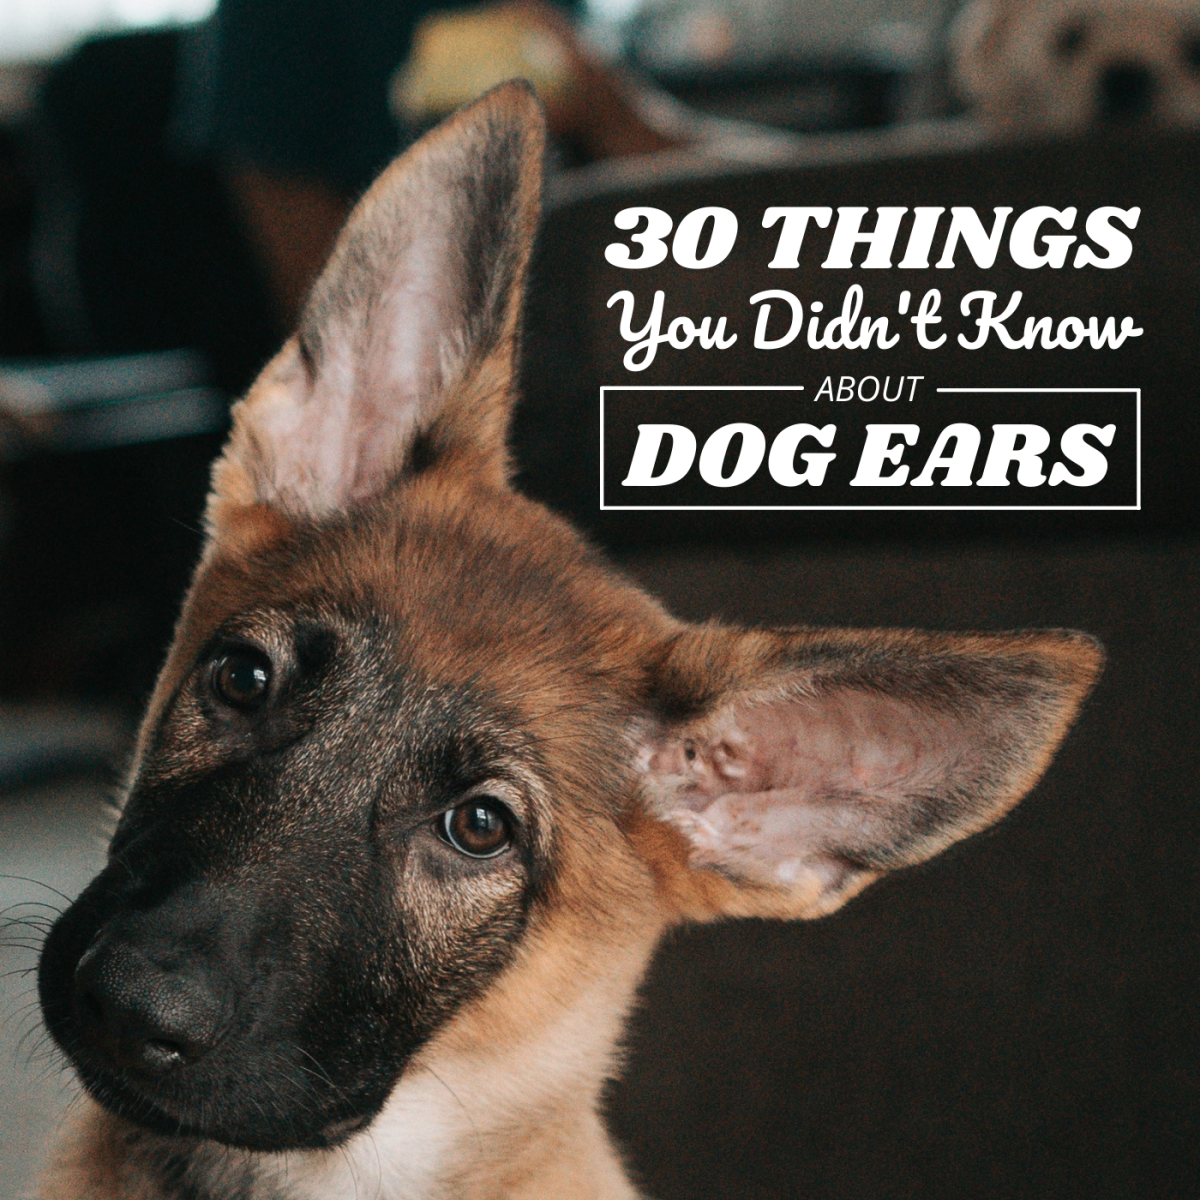 30 Fascinating Facts About Dog Ears